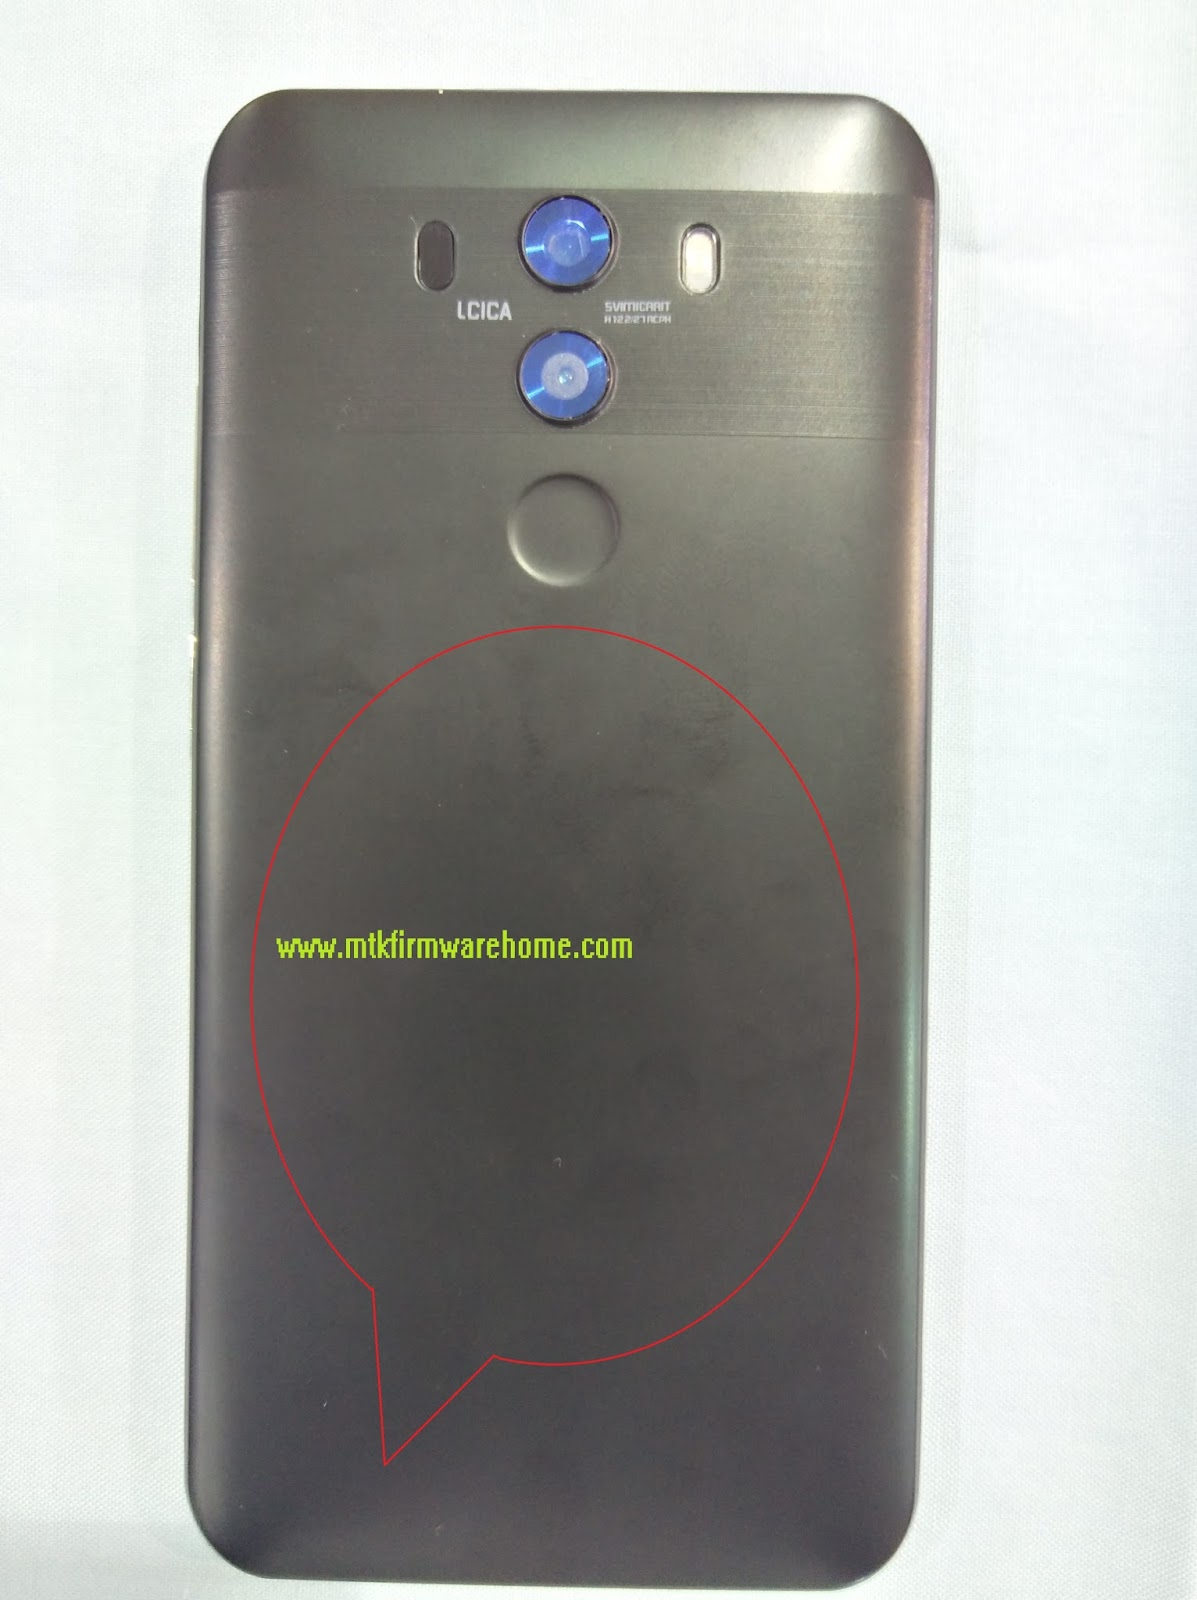 lenosed mate10 firmware tested flash file cm2 read file download